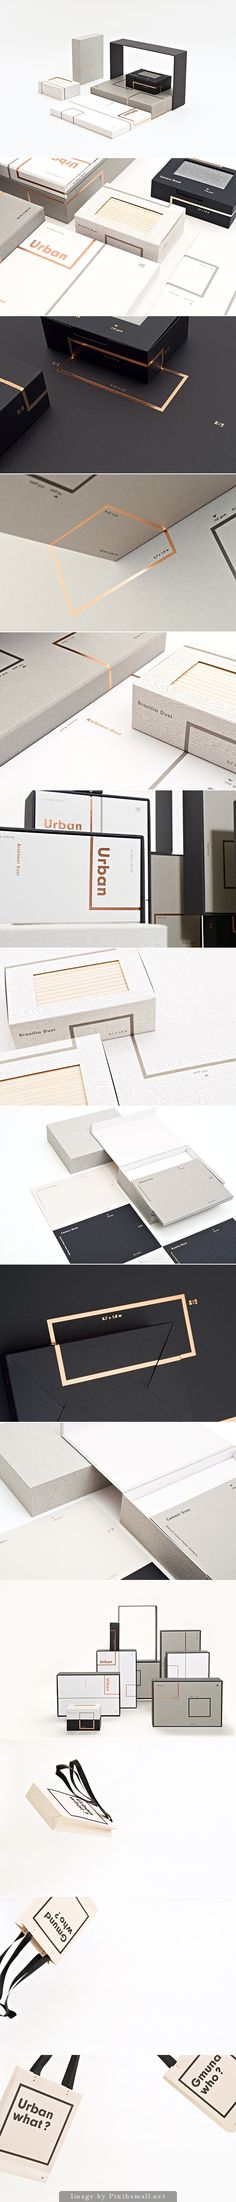 Urban modern box #packaging design ideas. I love the monochromatic color pallet…